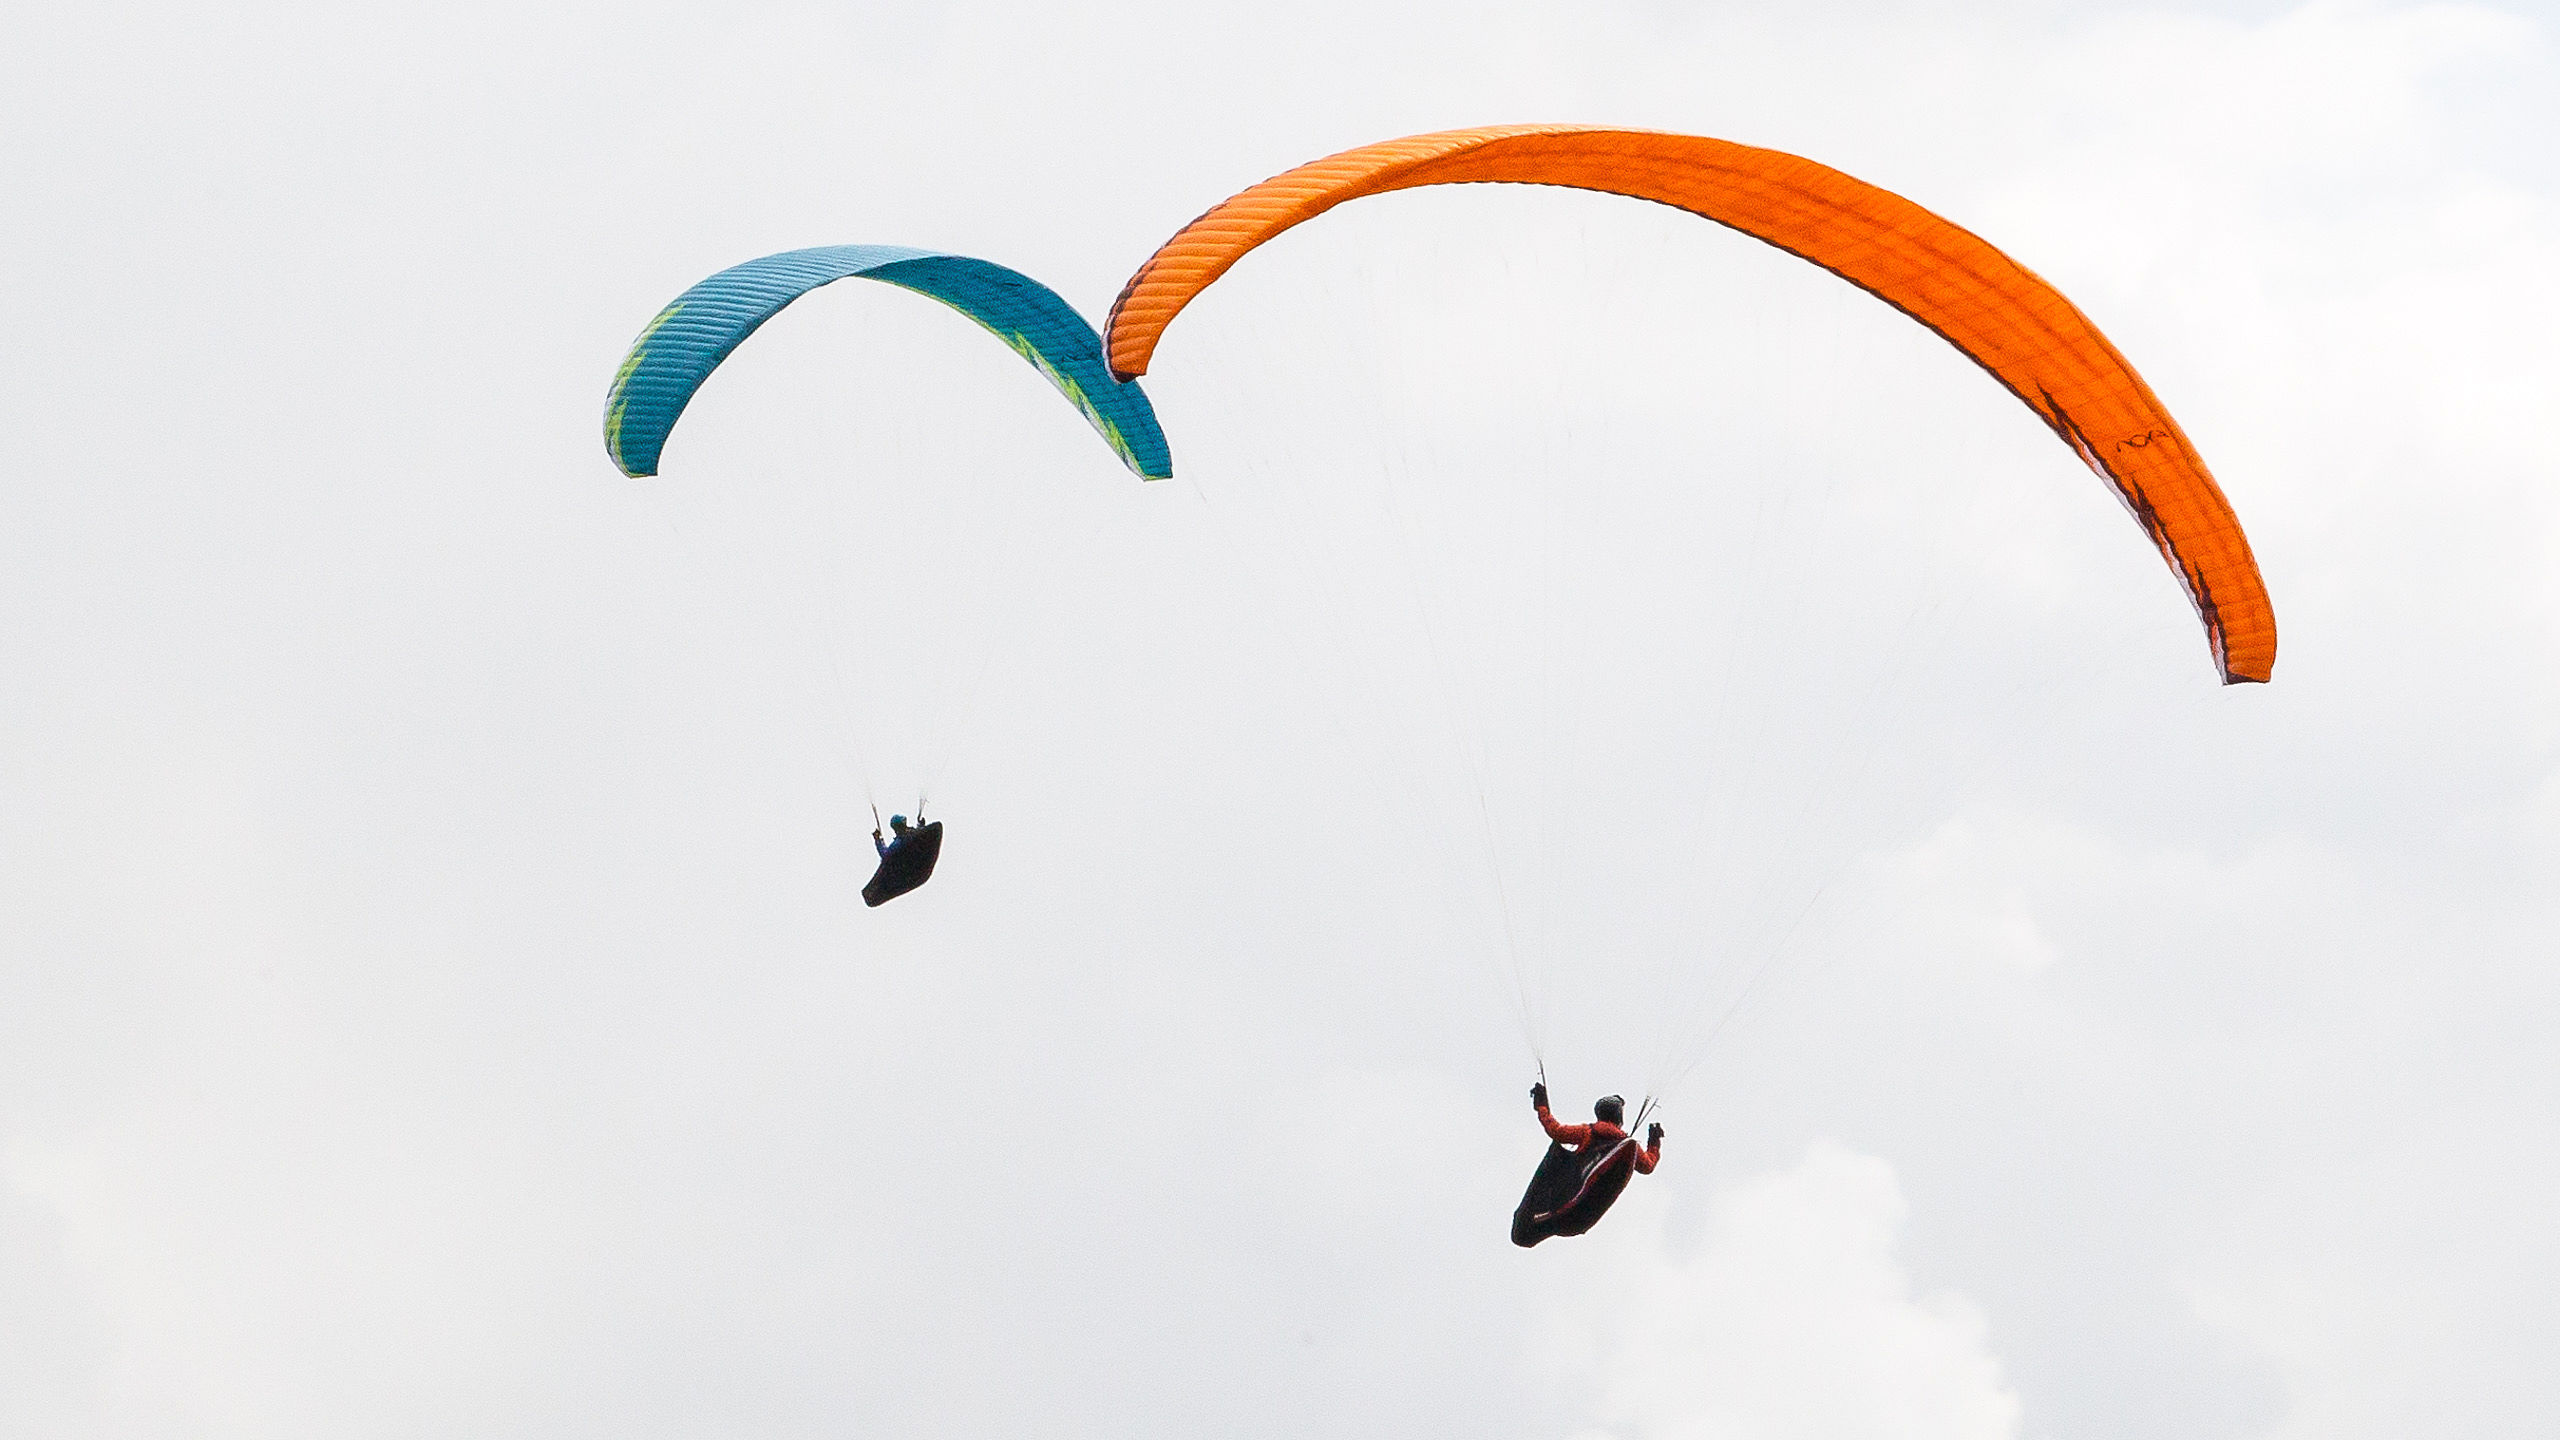 PARAGLIDING FLIGHT EXTREME SPORT  ART WALL LARGE IMAGE GIANT POSTER !!